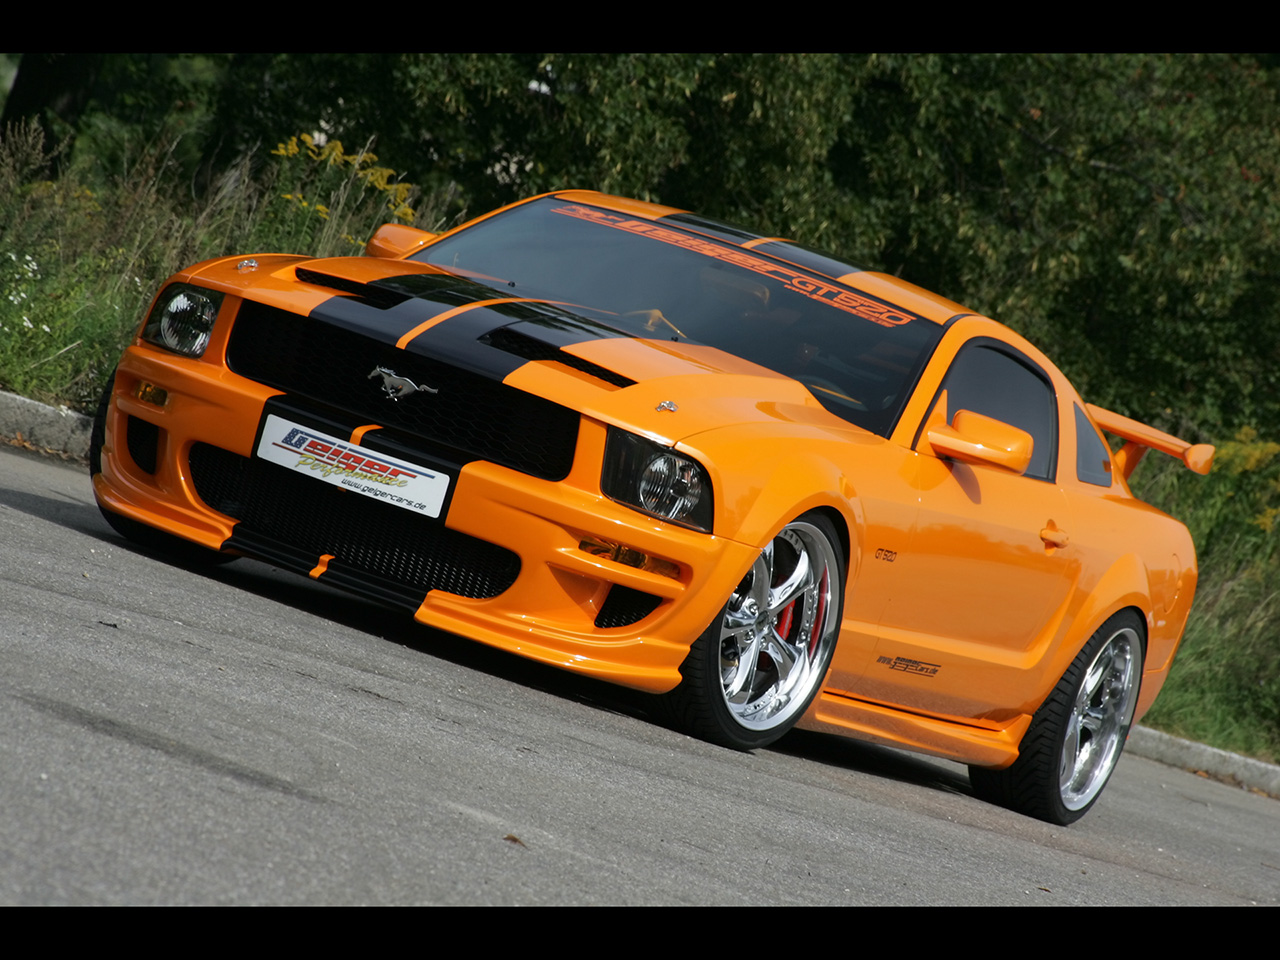 Ford mustang gt 2013 wallpaper ford mustang gt 2013 wallpaper